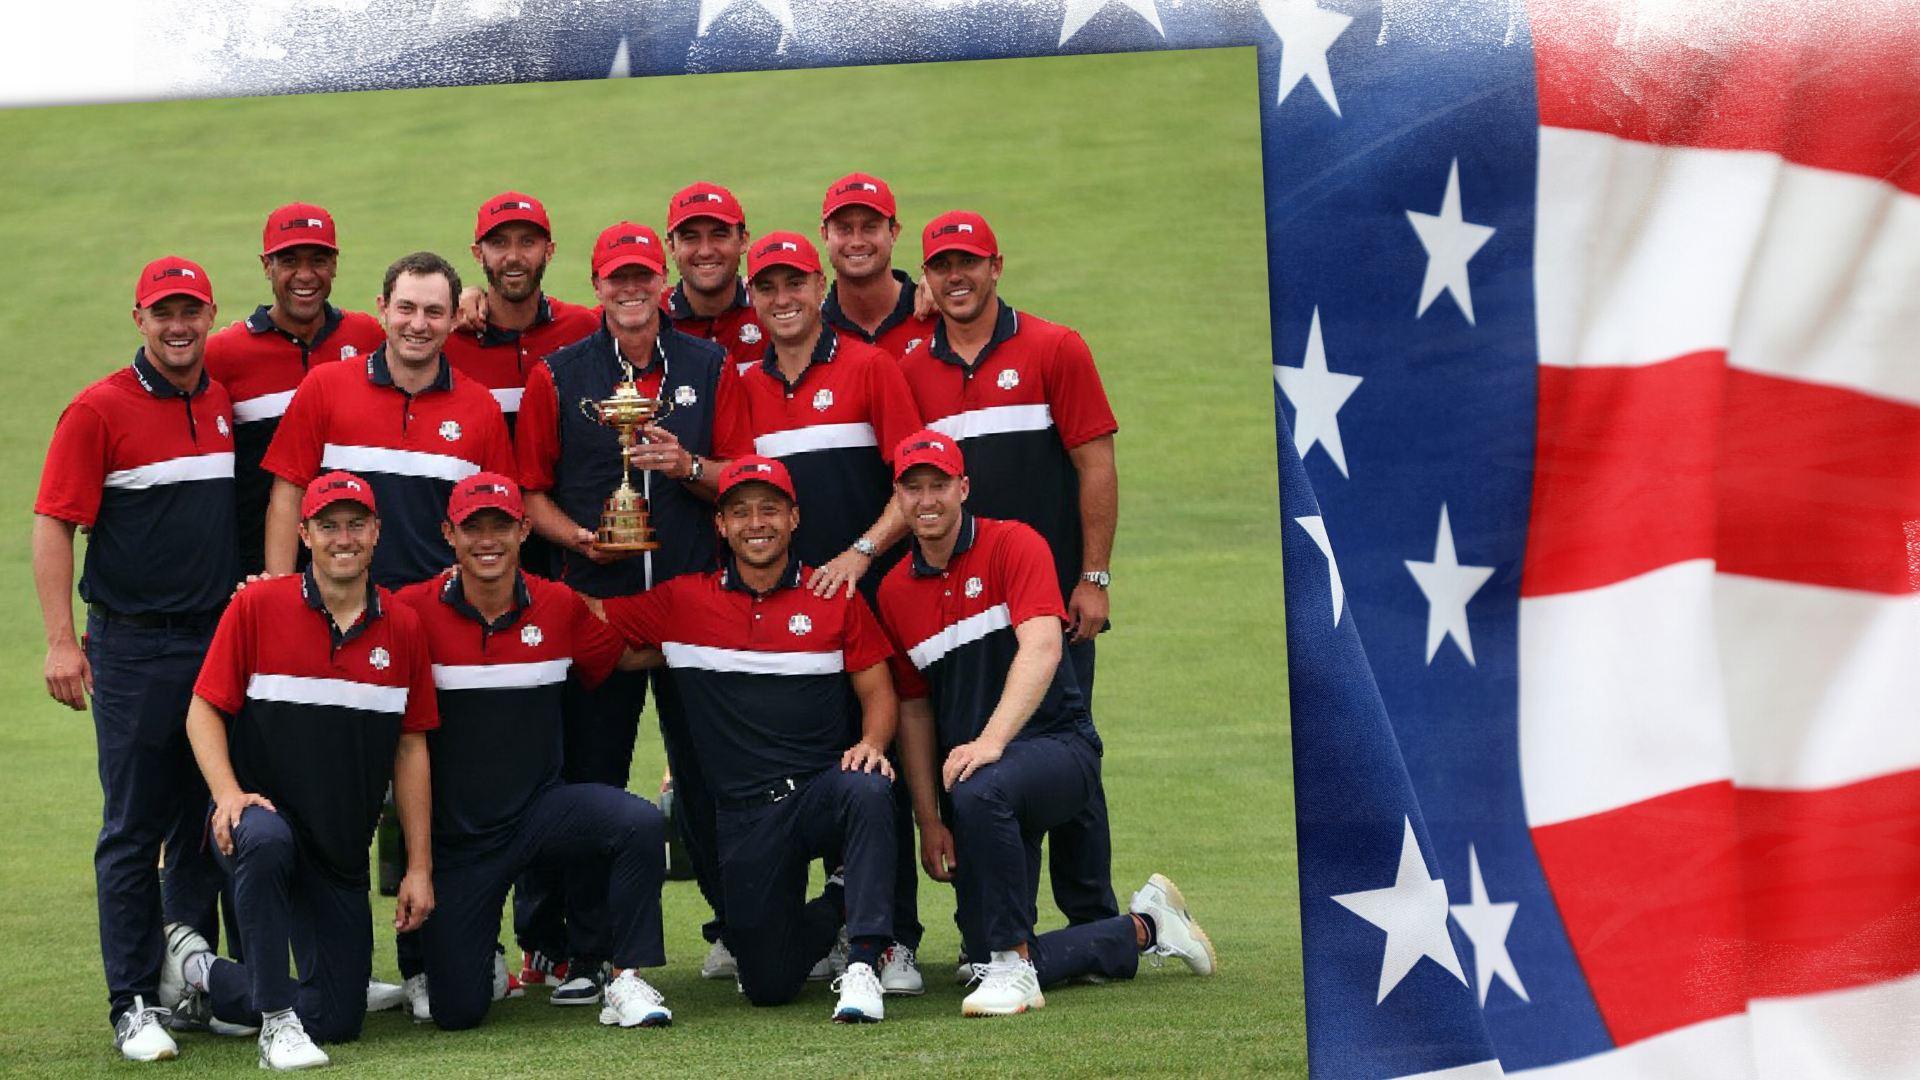 Memorable Moments from the Ryder Cup